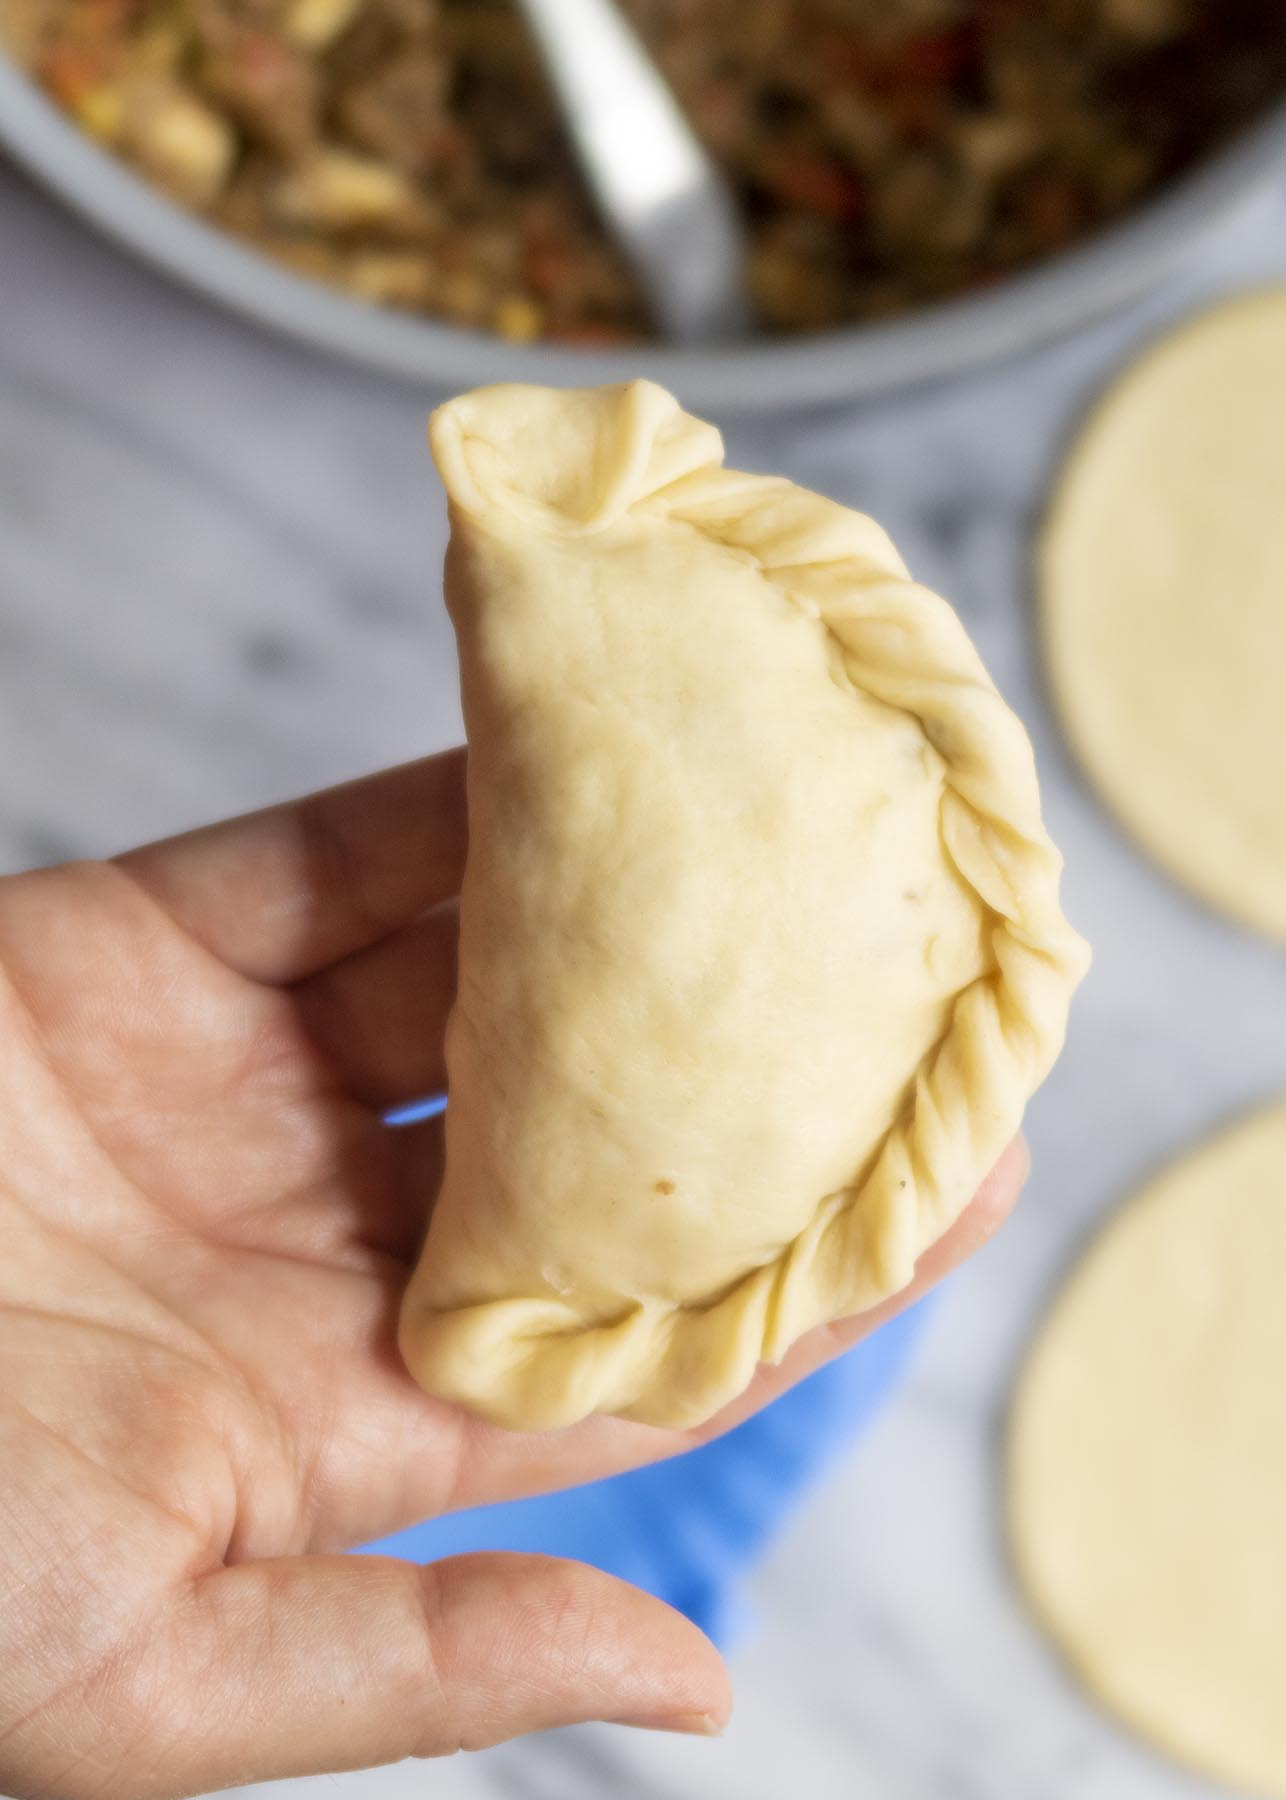 An unbaked homemade empanada displayed on person's hand to show roped edge